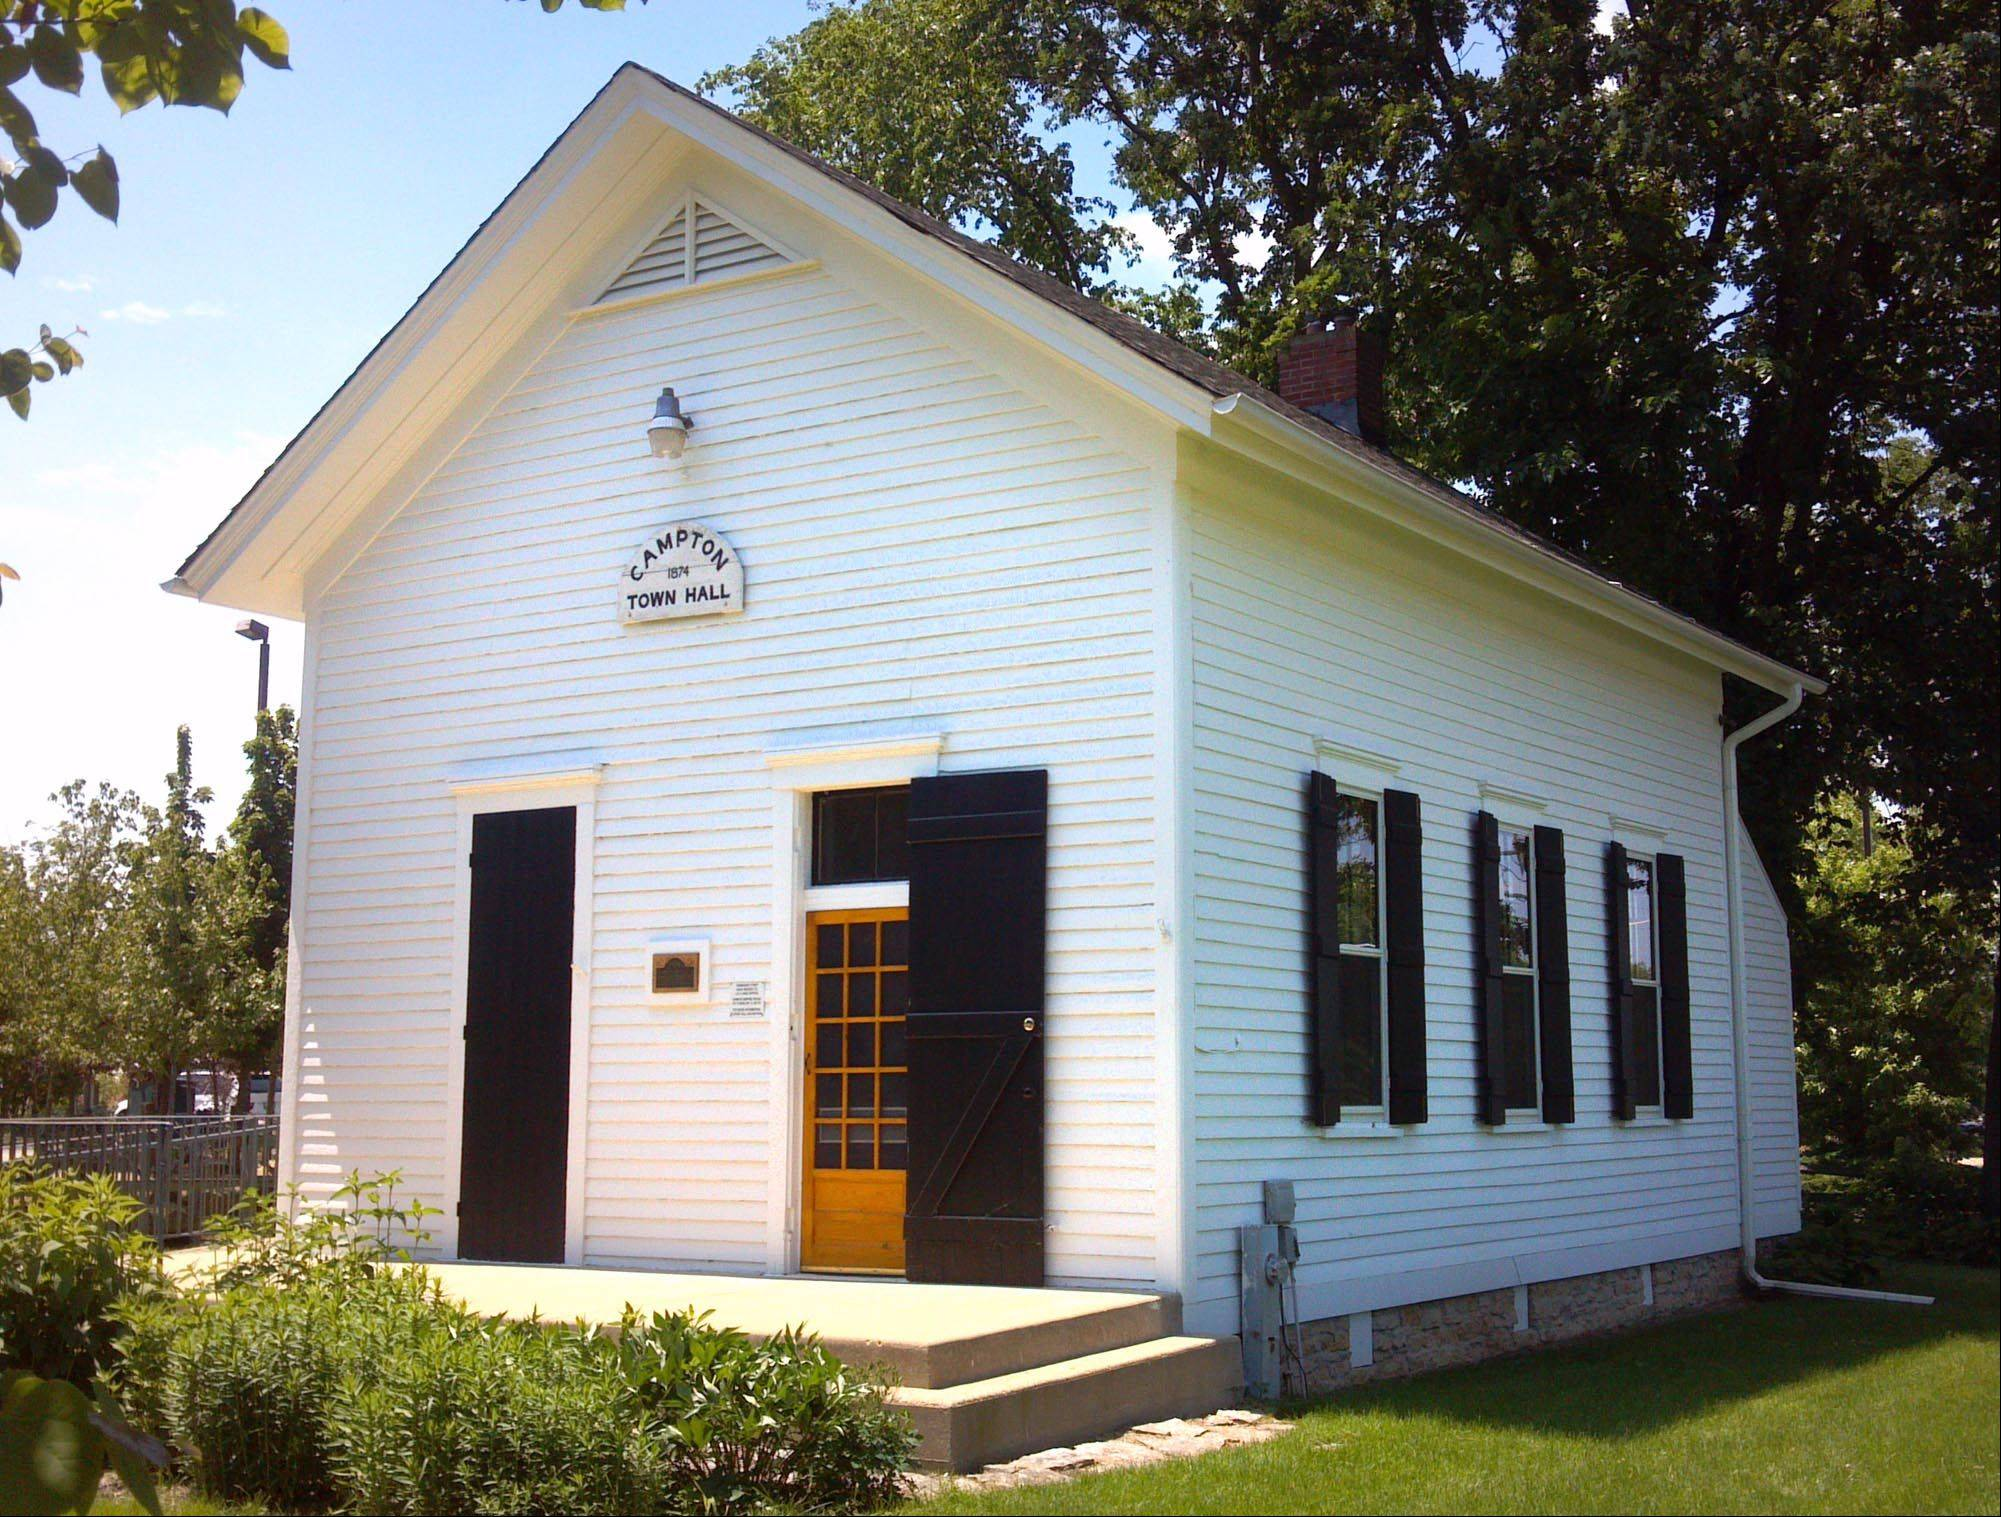 The original Campton Township Town Hall was built in 1874 and is on the Kane County and National Register of Historic Places. It was renovated through a riverboat grant in 2011 and will be used for educational purposes. An open house will be held from 11 a.m. to 3 p.m. Saturday at 4N498 Town Hall Road, Campton Township.